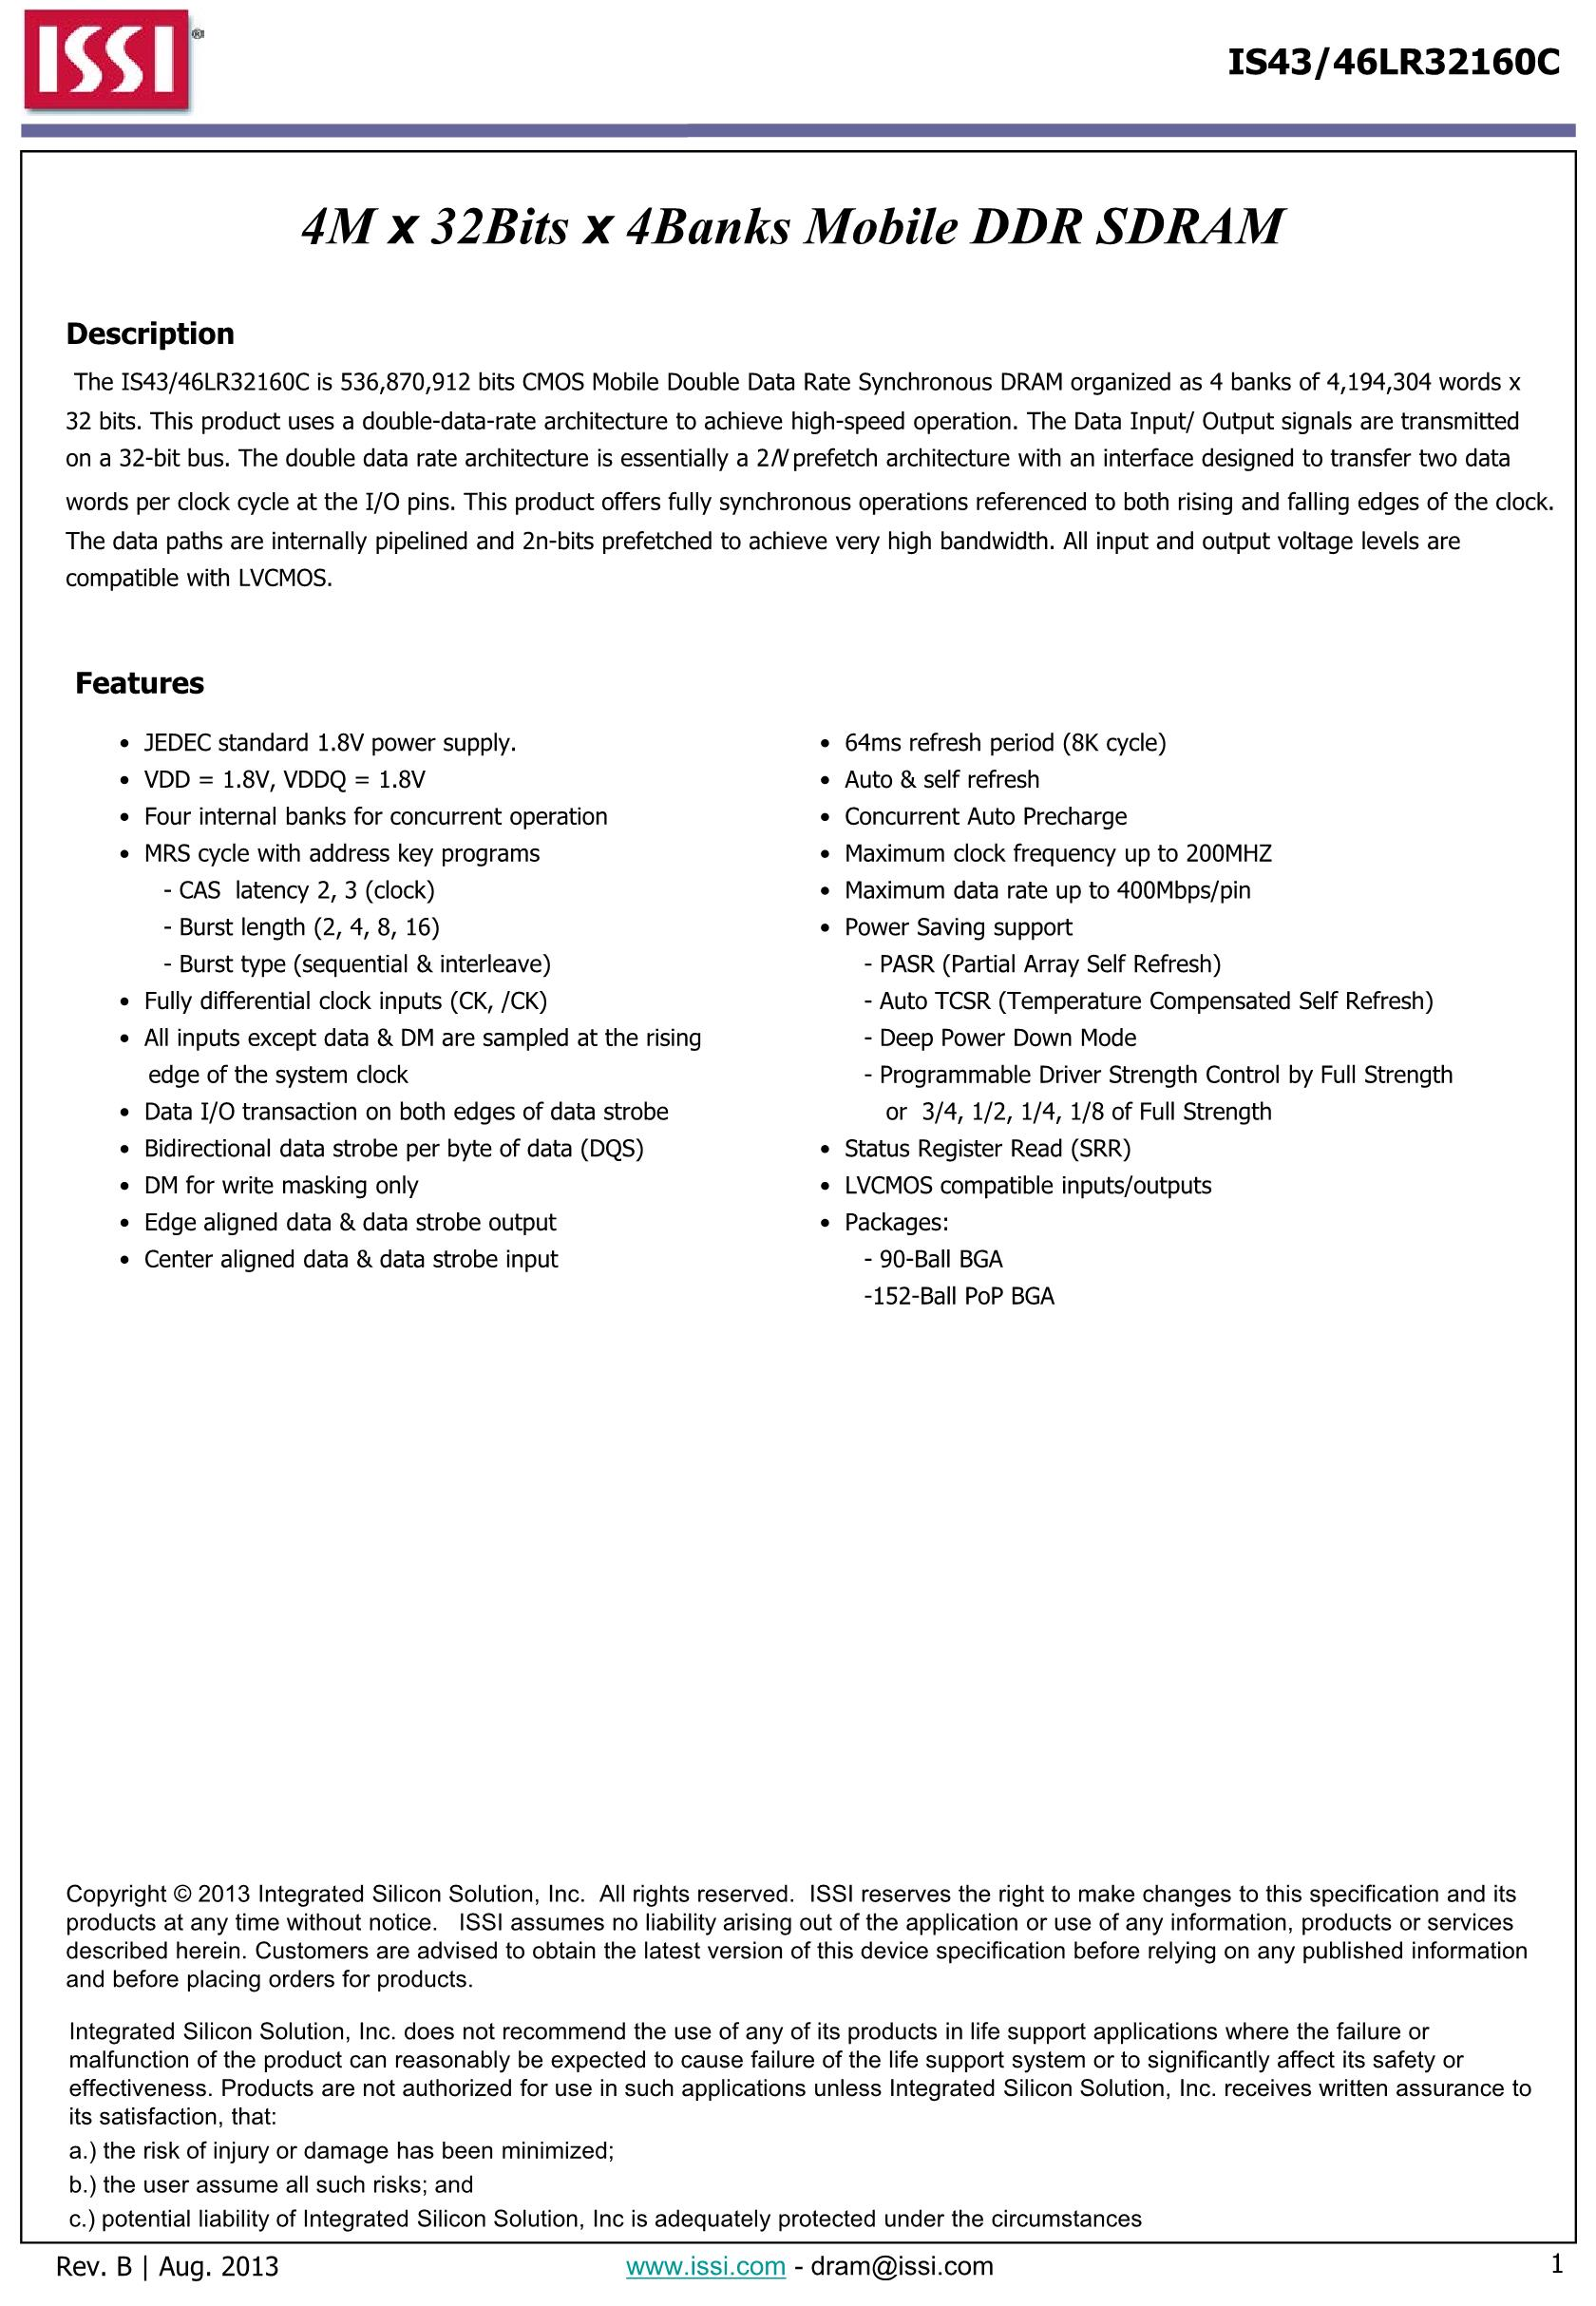 IS43TR16640A-125JBL's pdf picture 1